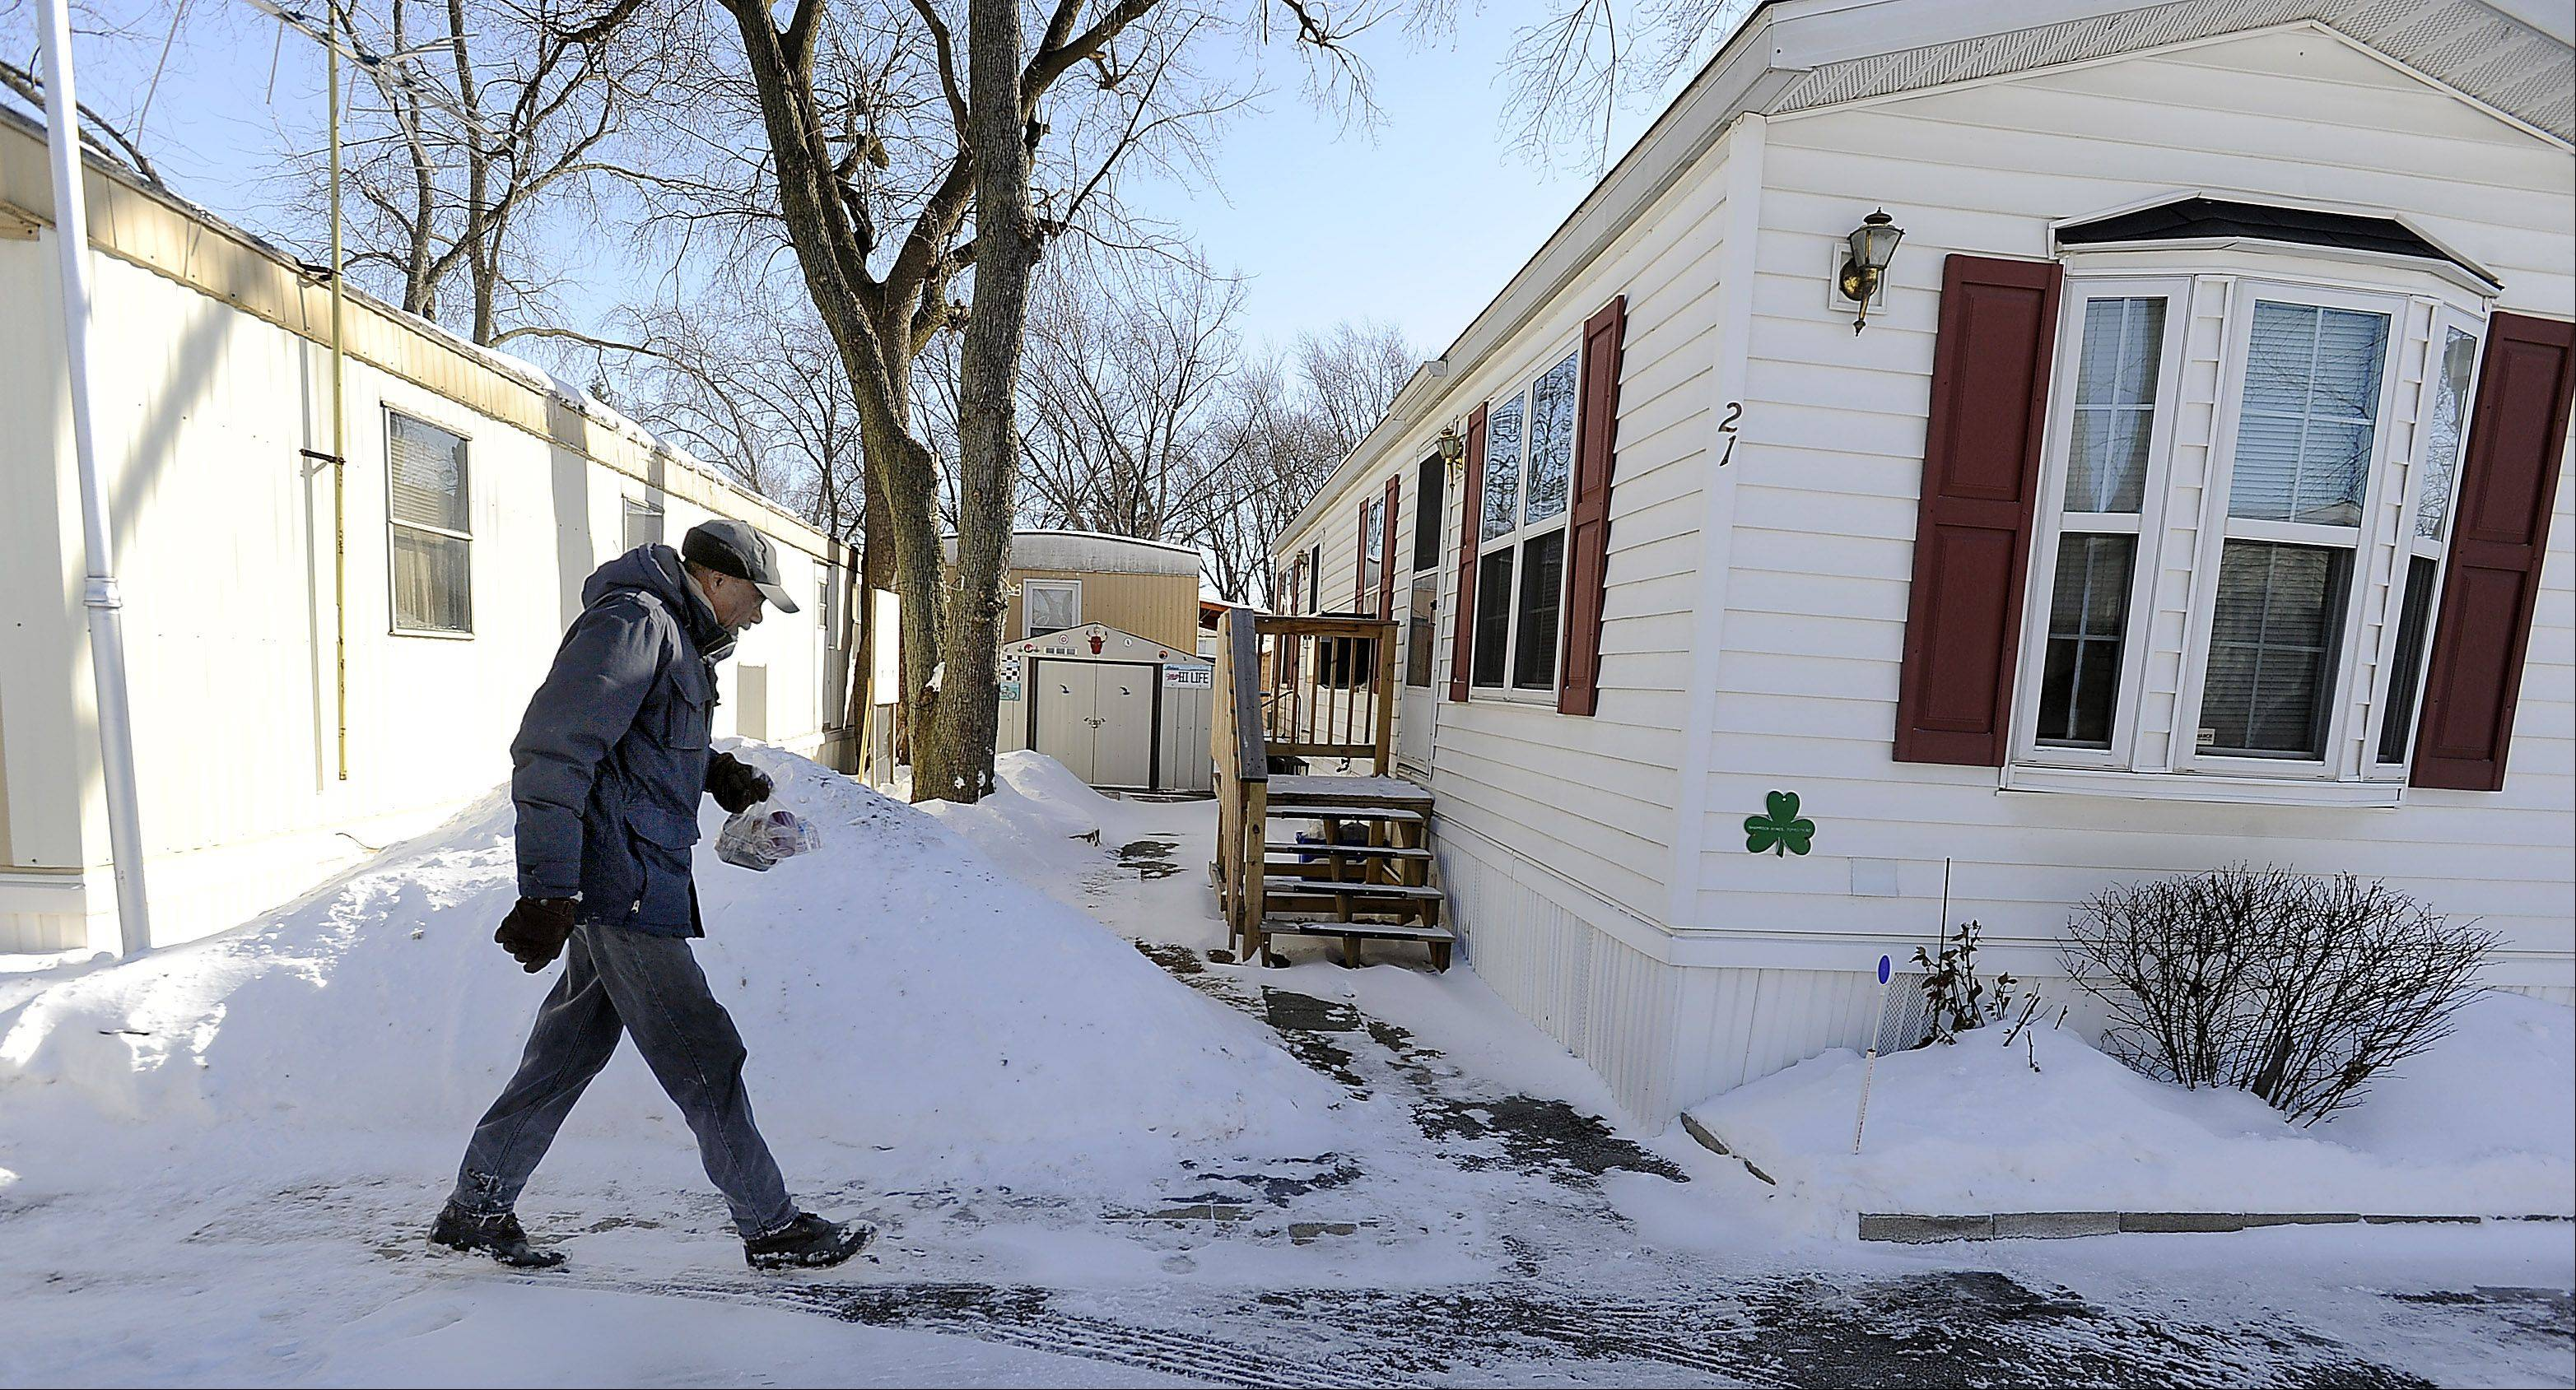 Meals on Wheels driver Samuel Grimes, 88, walks through the snow in a Des Plaines mobile home community Monday to deliver hot meals to needy people on his route.